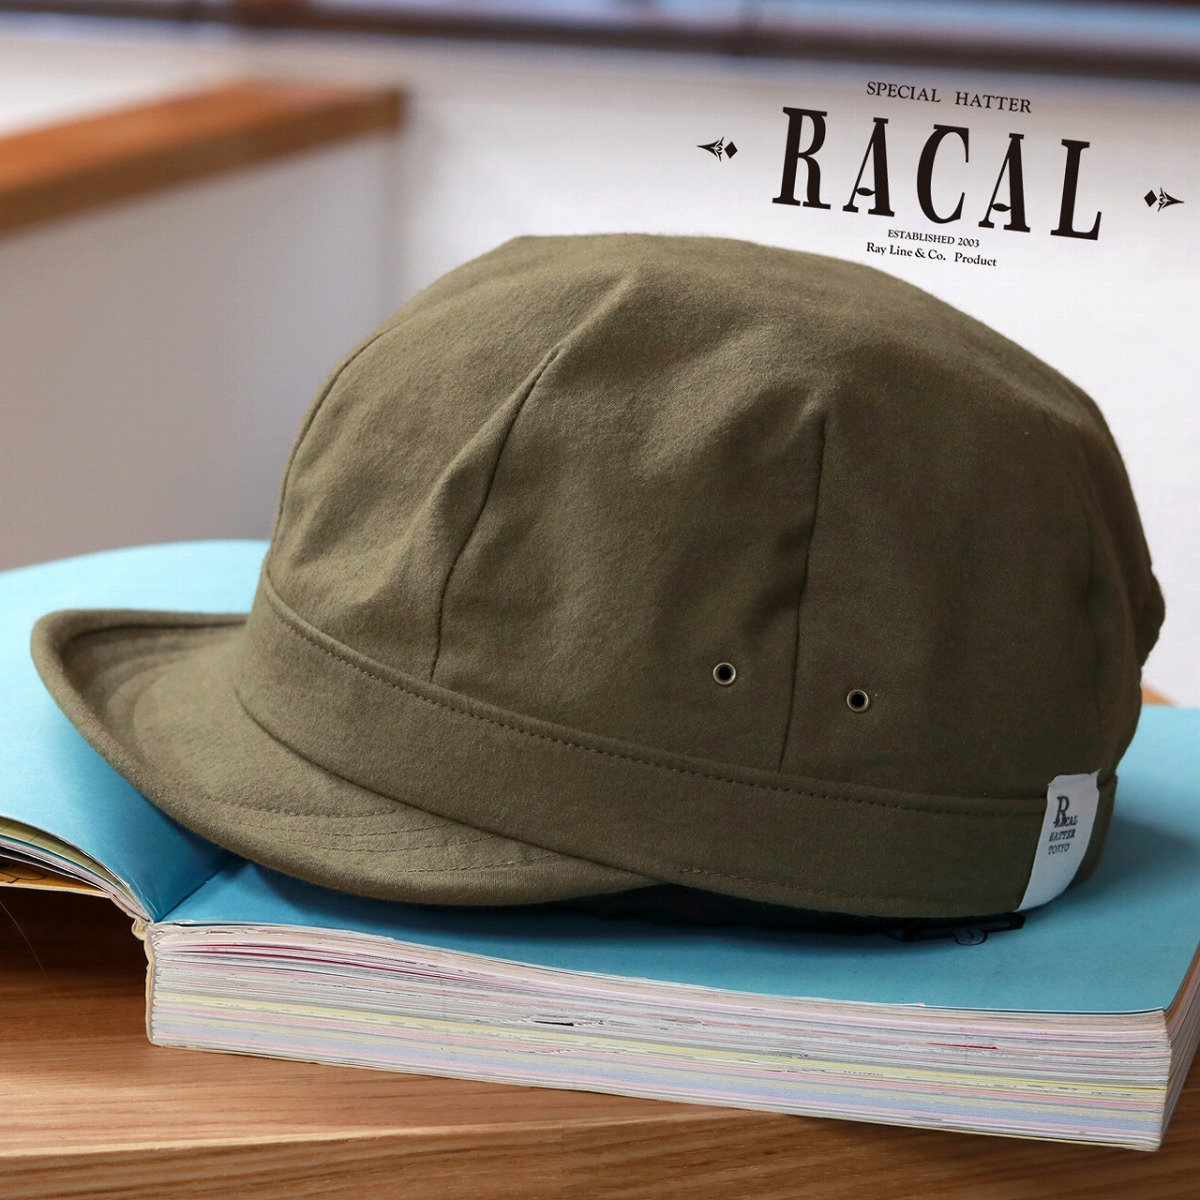 ... awning racal military cap Shin pull plain fabric cotton CAP brand  fashion casual accessory outdoor   olive  cap  man birthday made in hat  キャップメンズ ... 55c76e41e56b